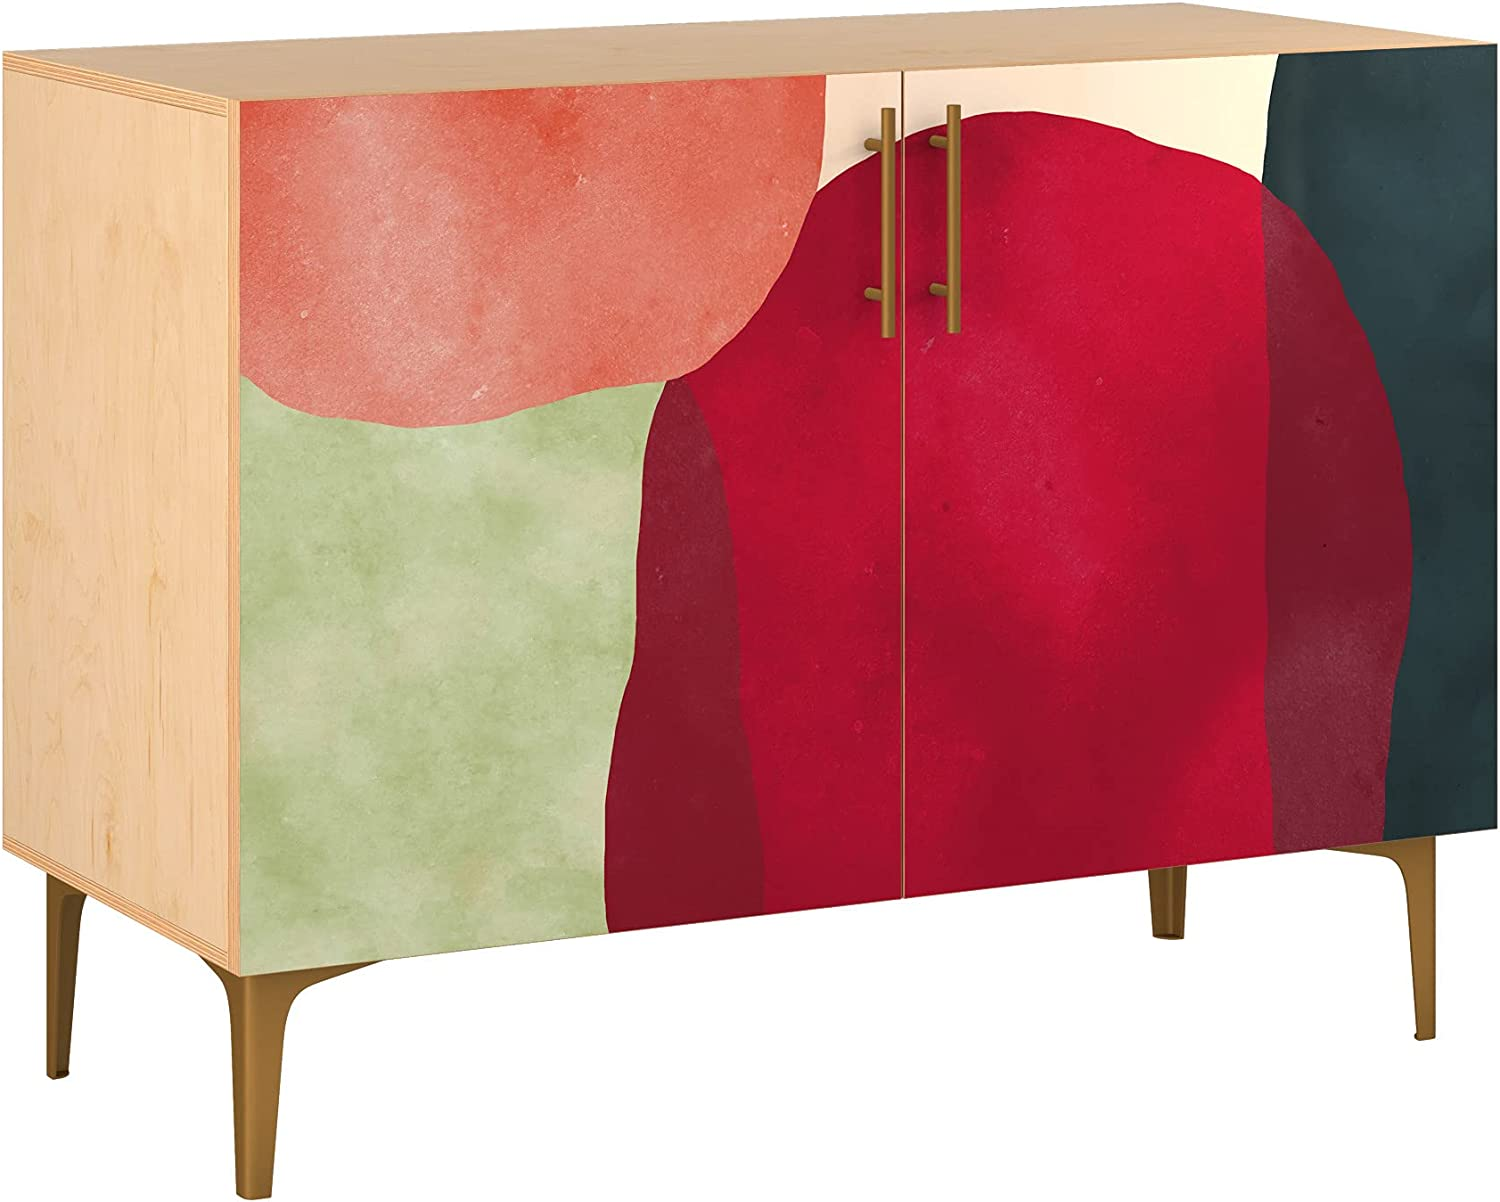 Poppy Credenza - Natural Sadie San Jose Mall Design Base Direct stock discount Styl 5 11 in Colors